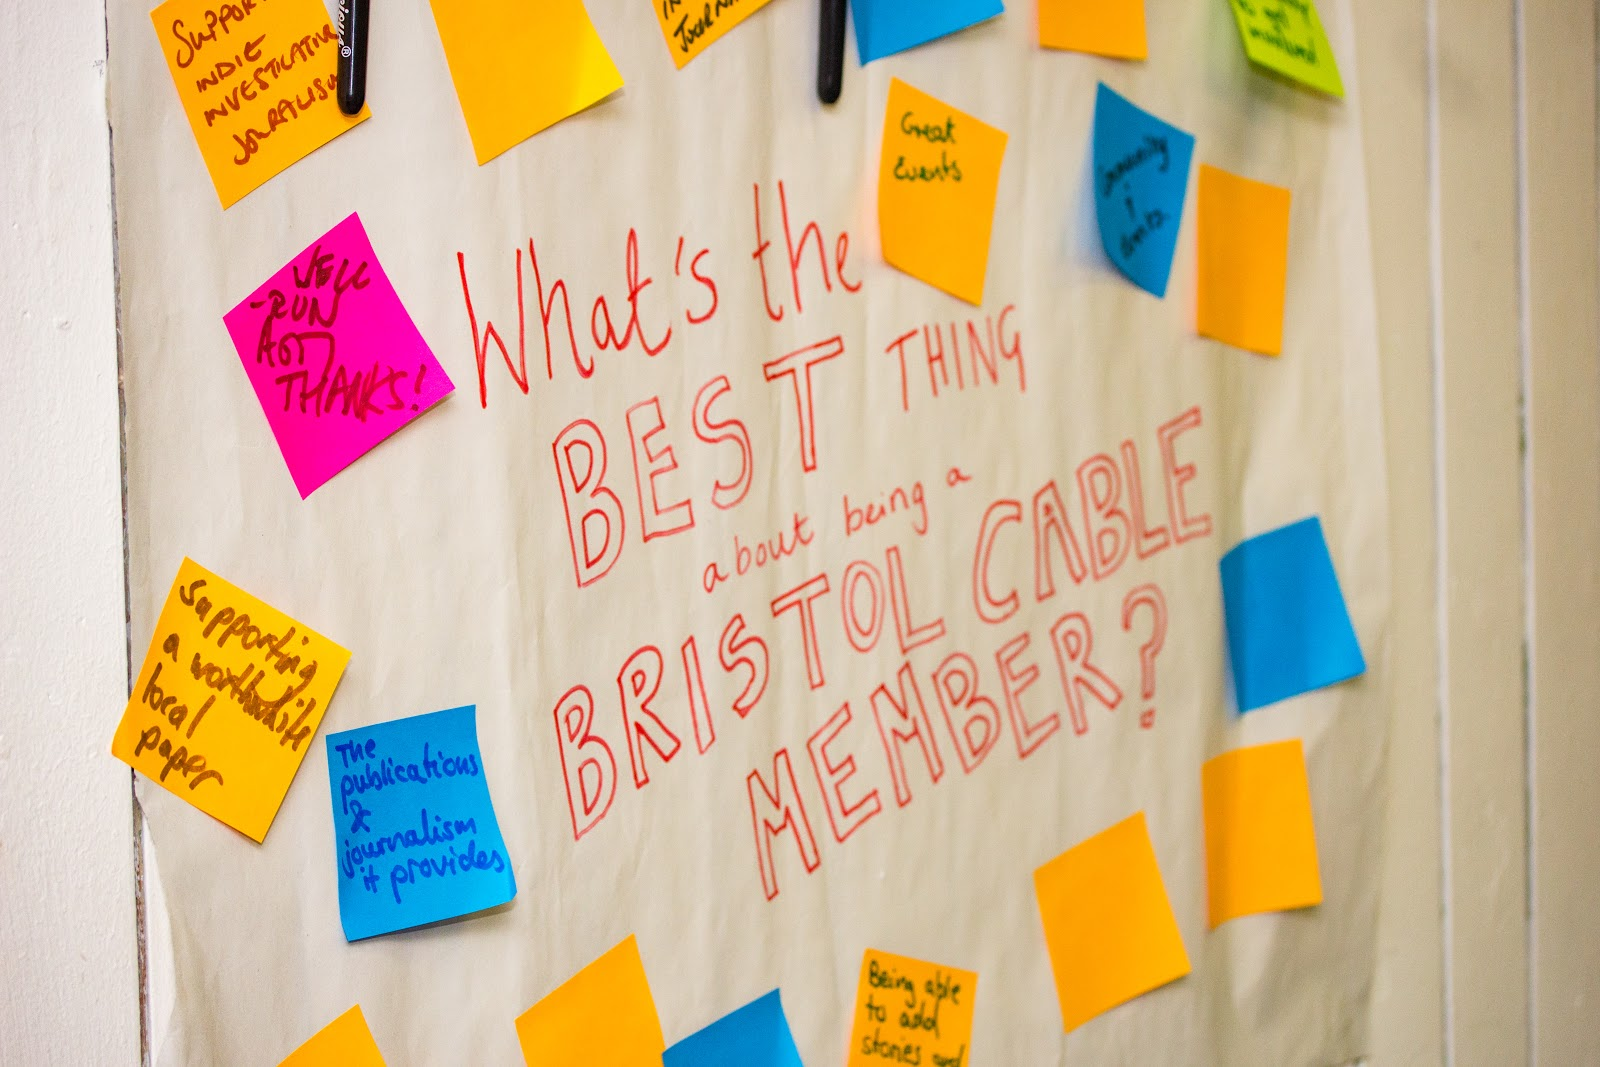 The Bristol Cable collects feedback from members attending the 2018 AGM